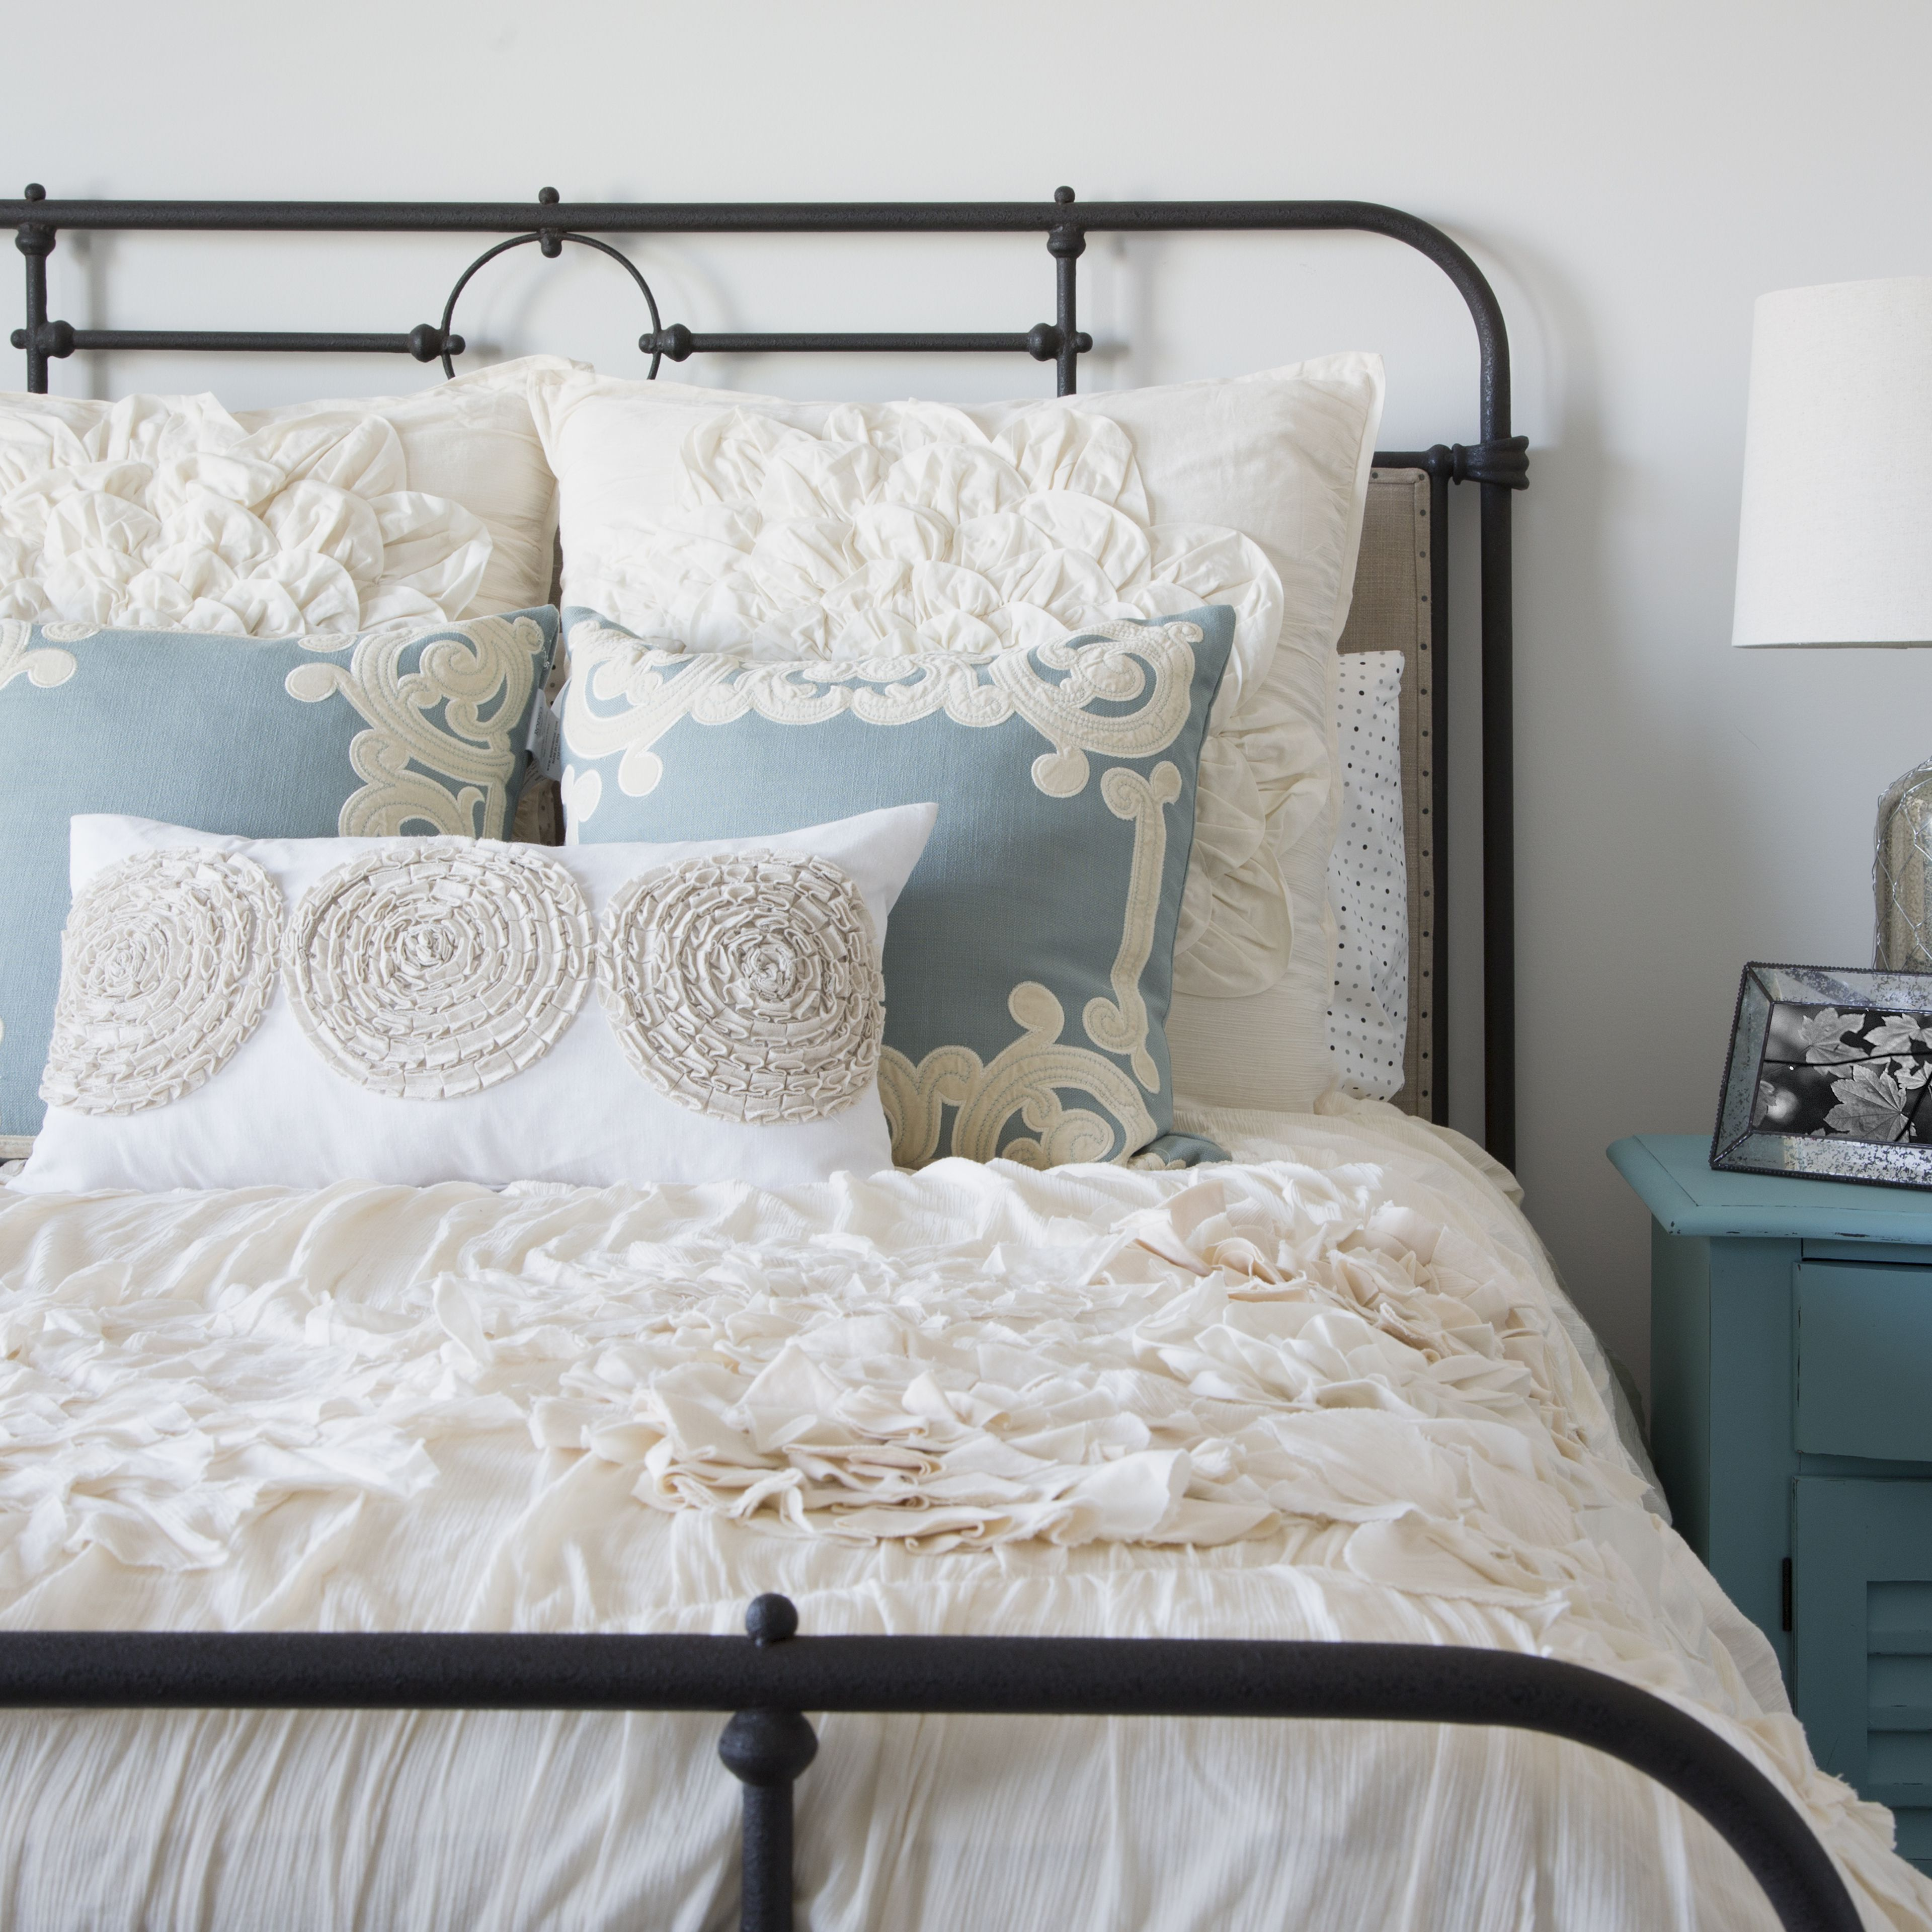 5 Reasons To Make Your Bed Every Day